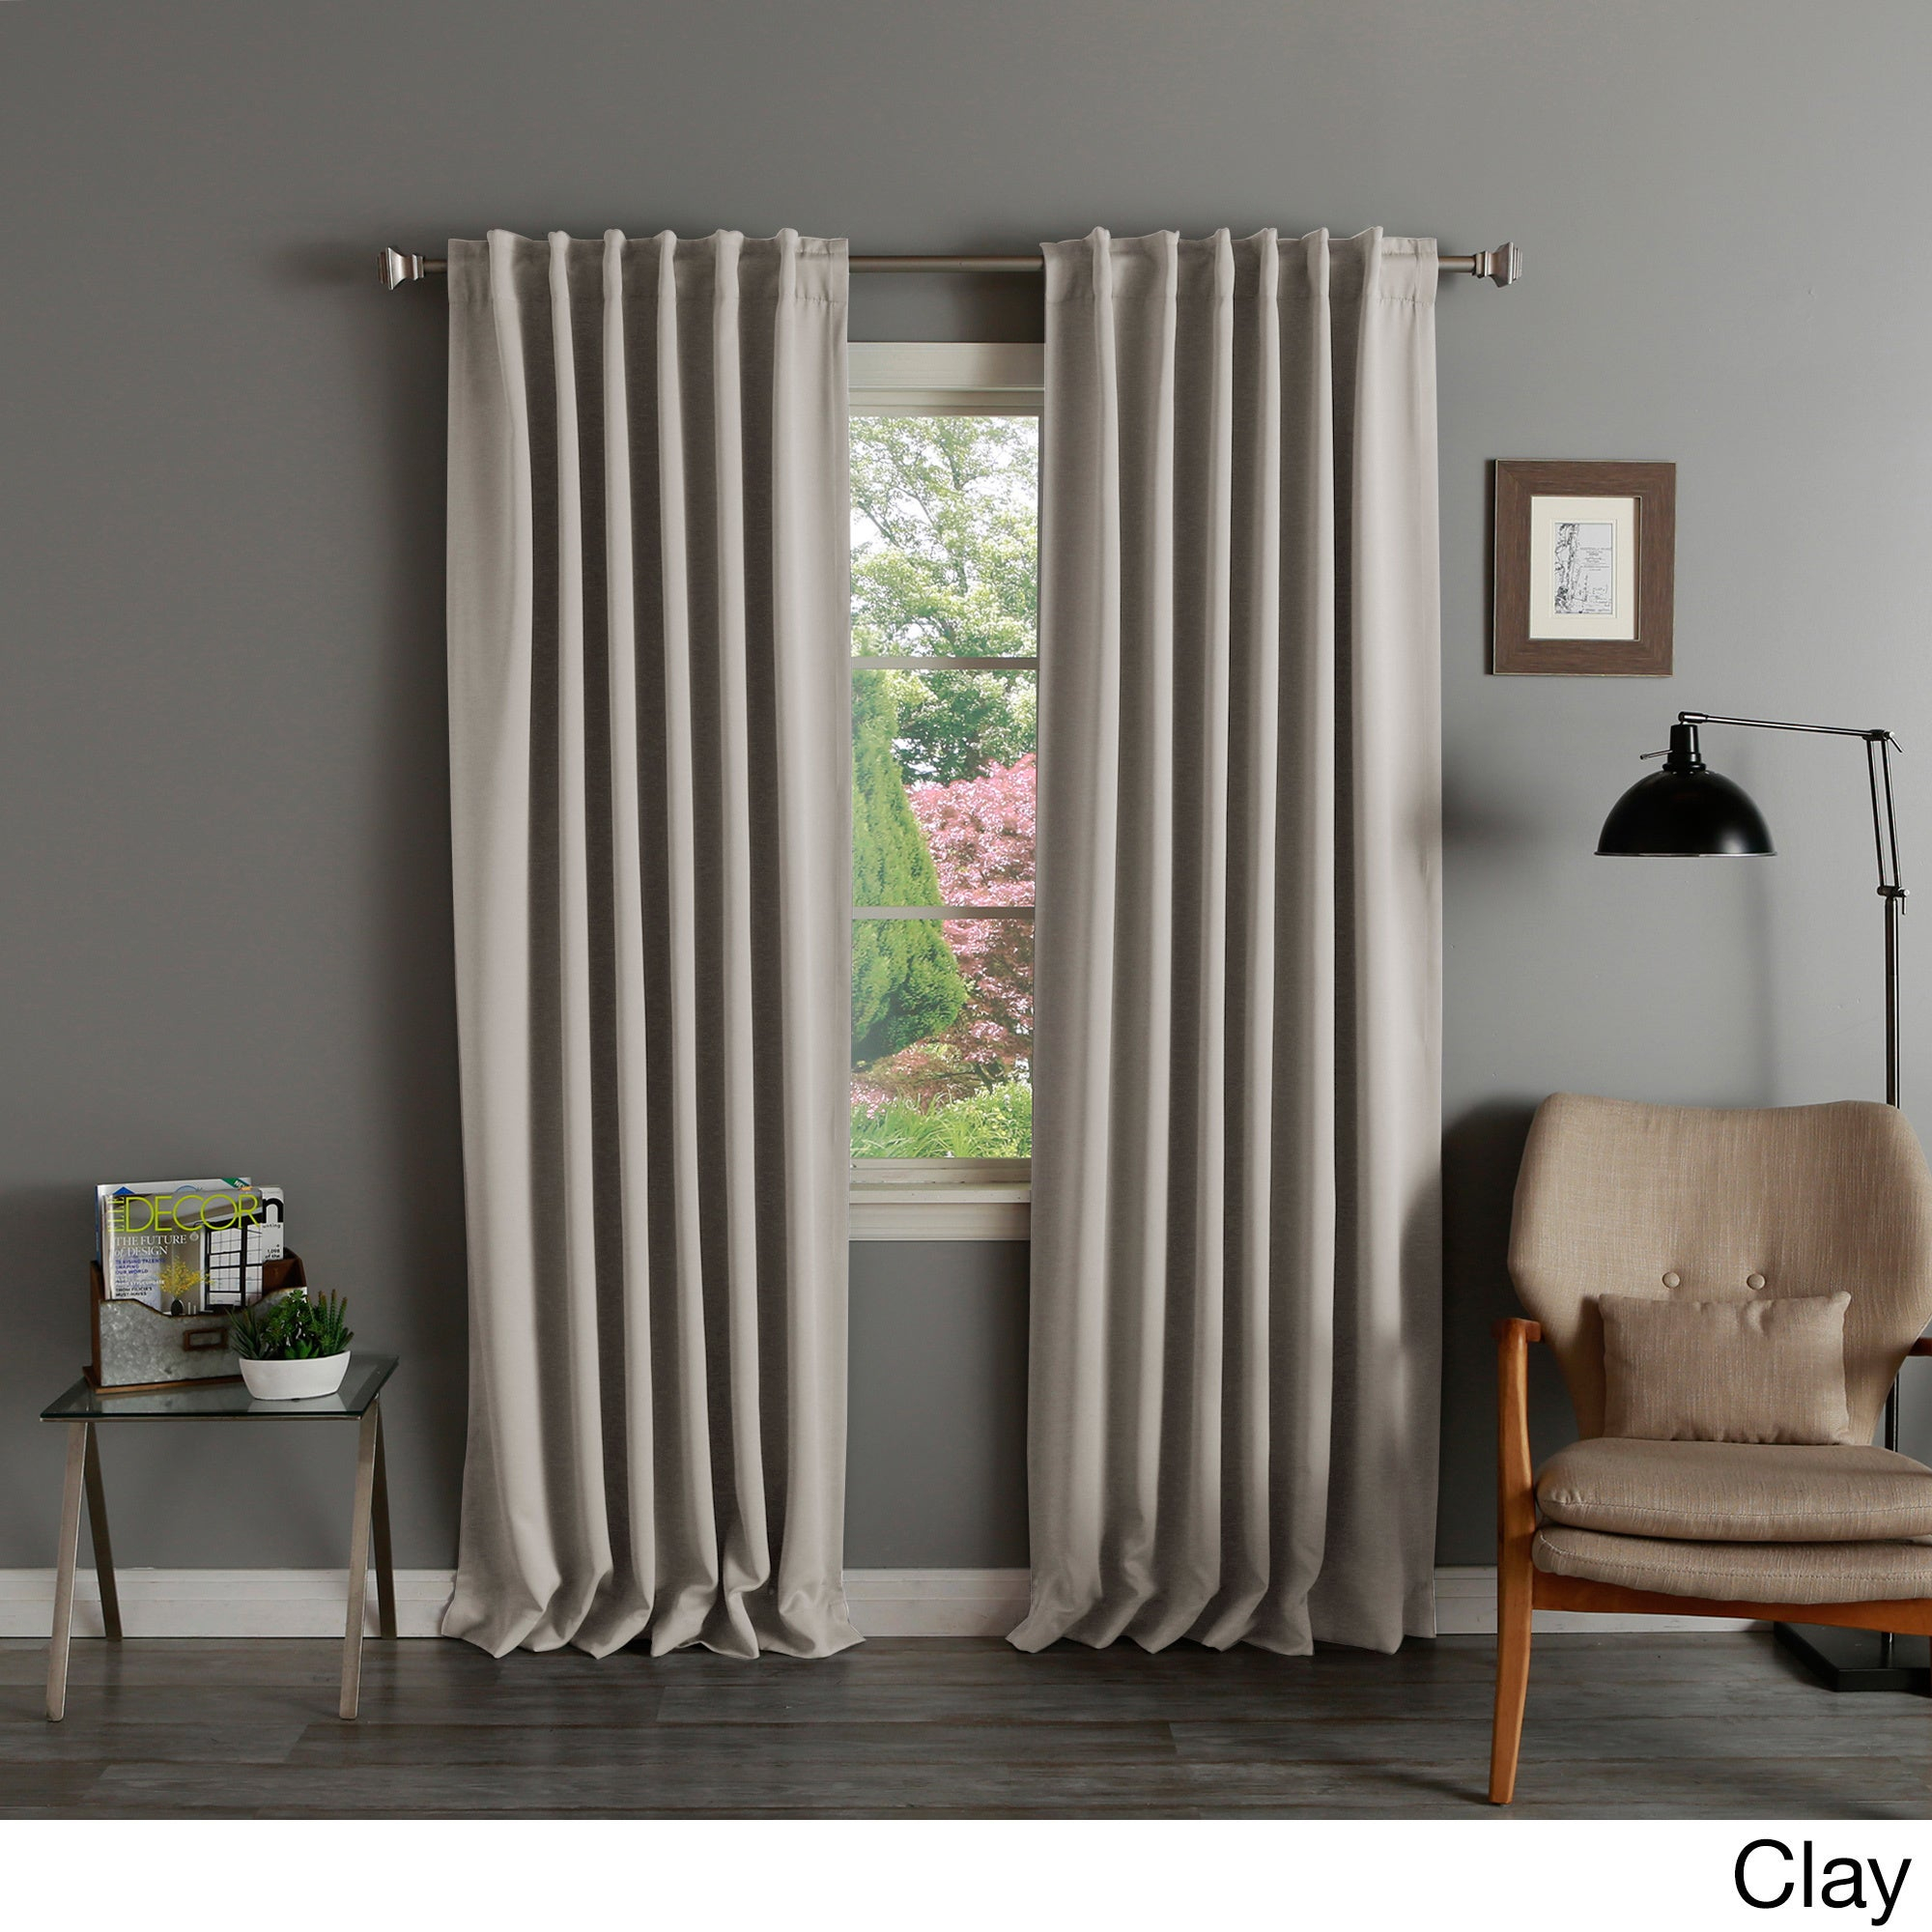 Solid Insulated Thermal Blackout Curtain Panel Pair Intended For Thermal Rod Pocket Blackout Curtain Panel Pairs (View 3 of 30)